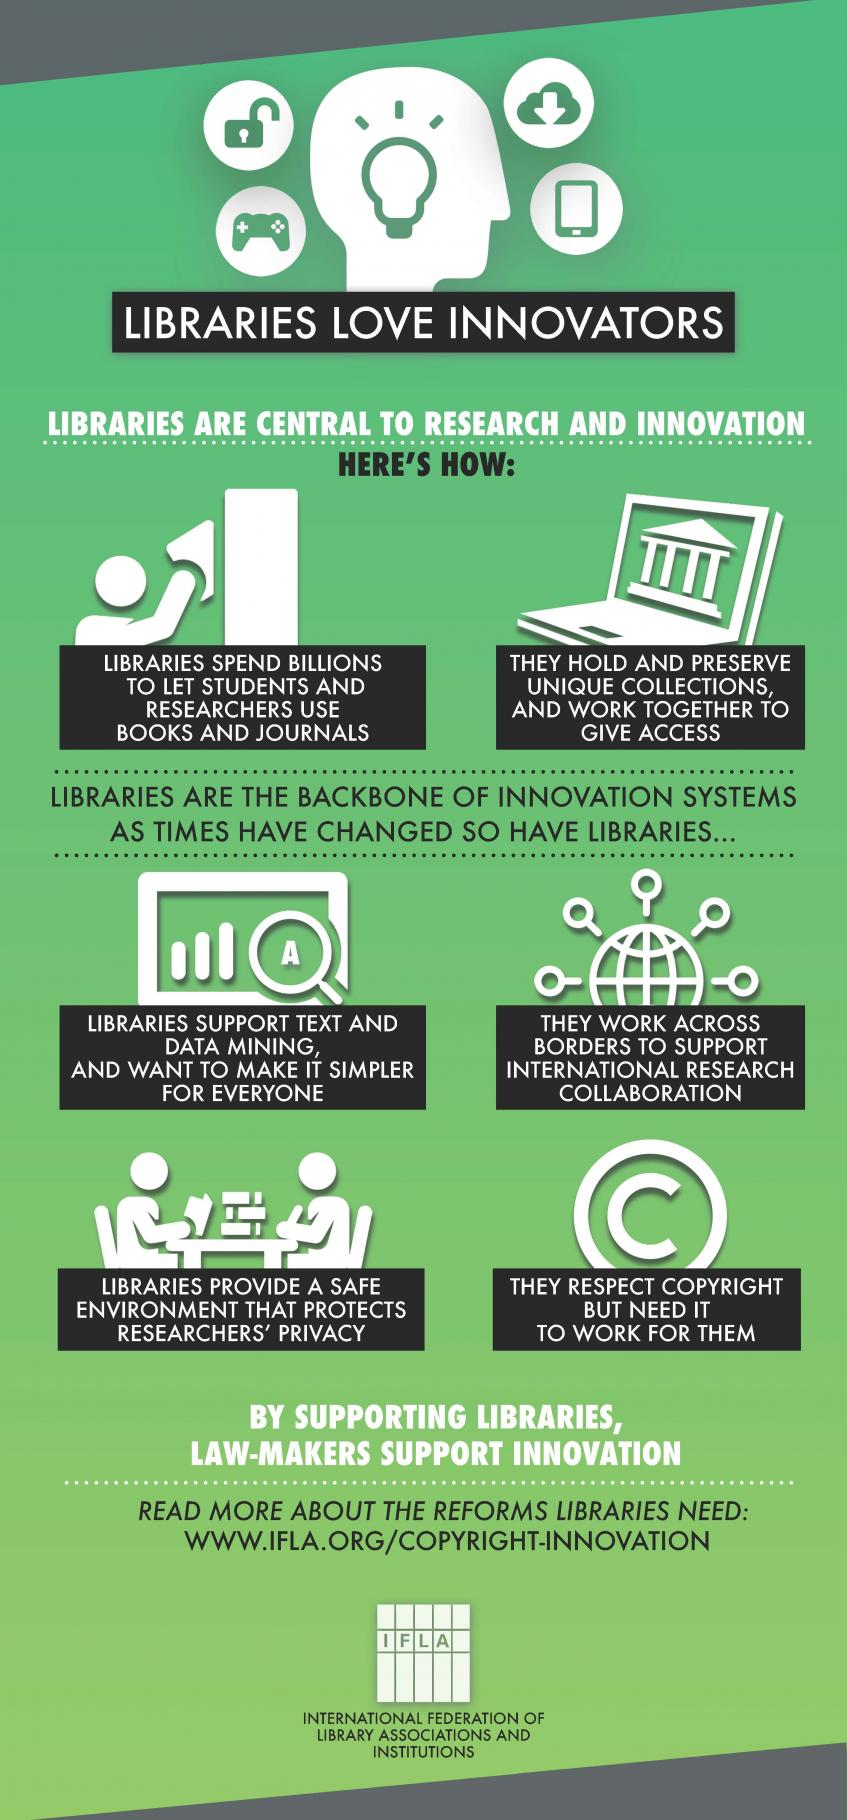 Libraries Love Innovators